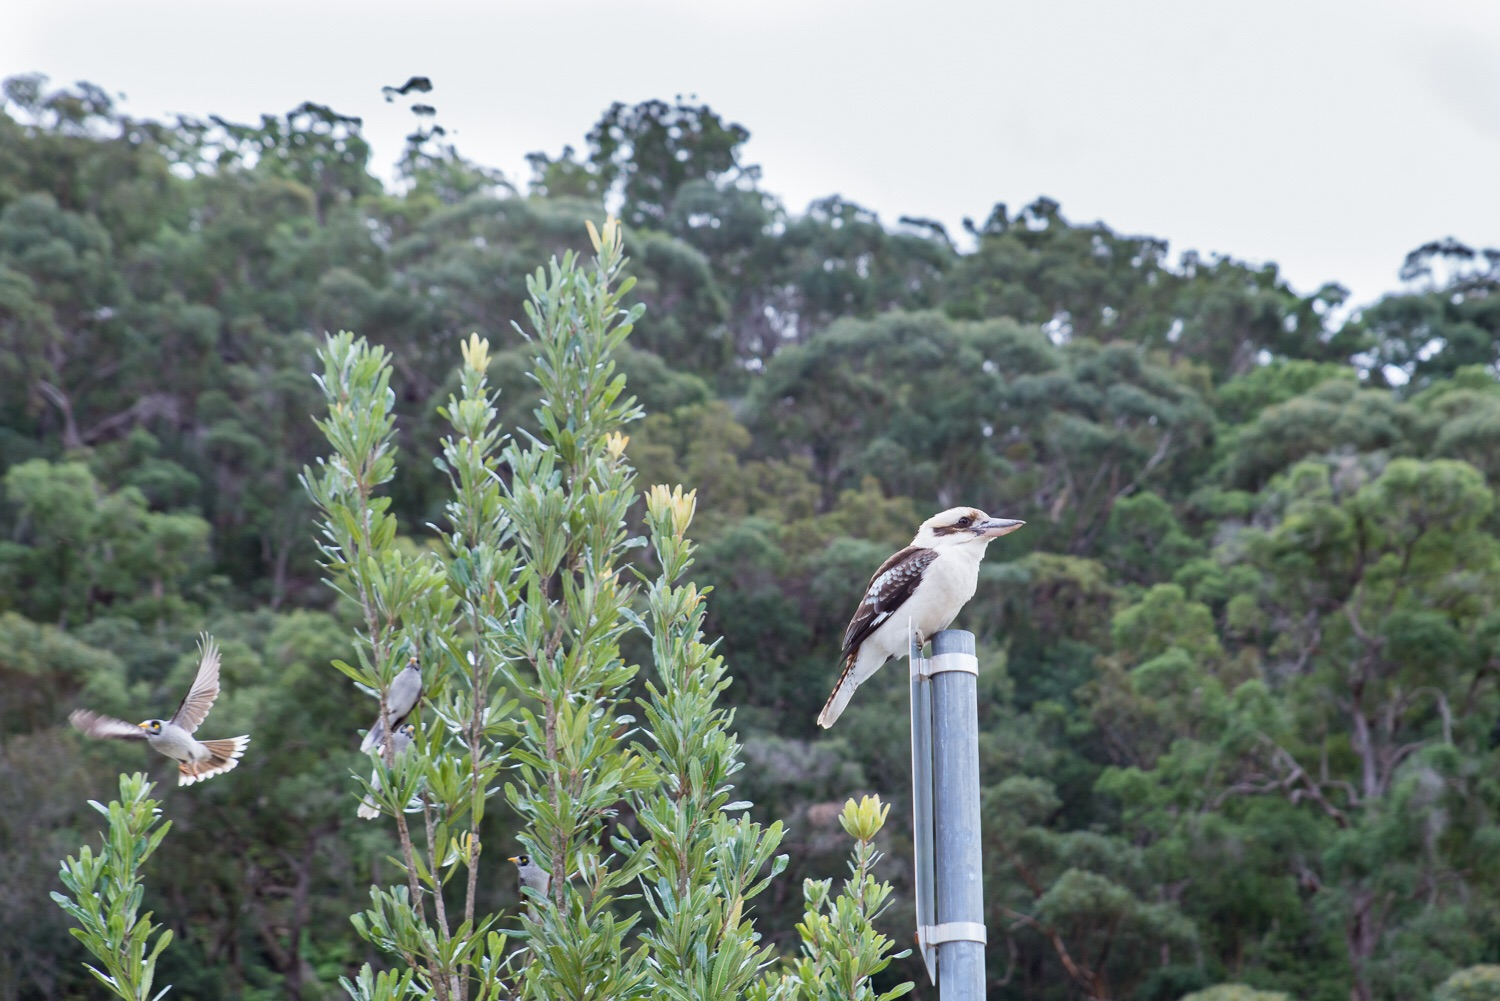 Kookaburra on the sign post just after stealing a sausage!